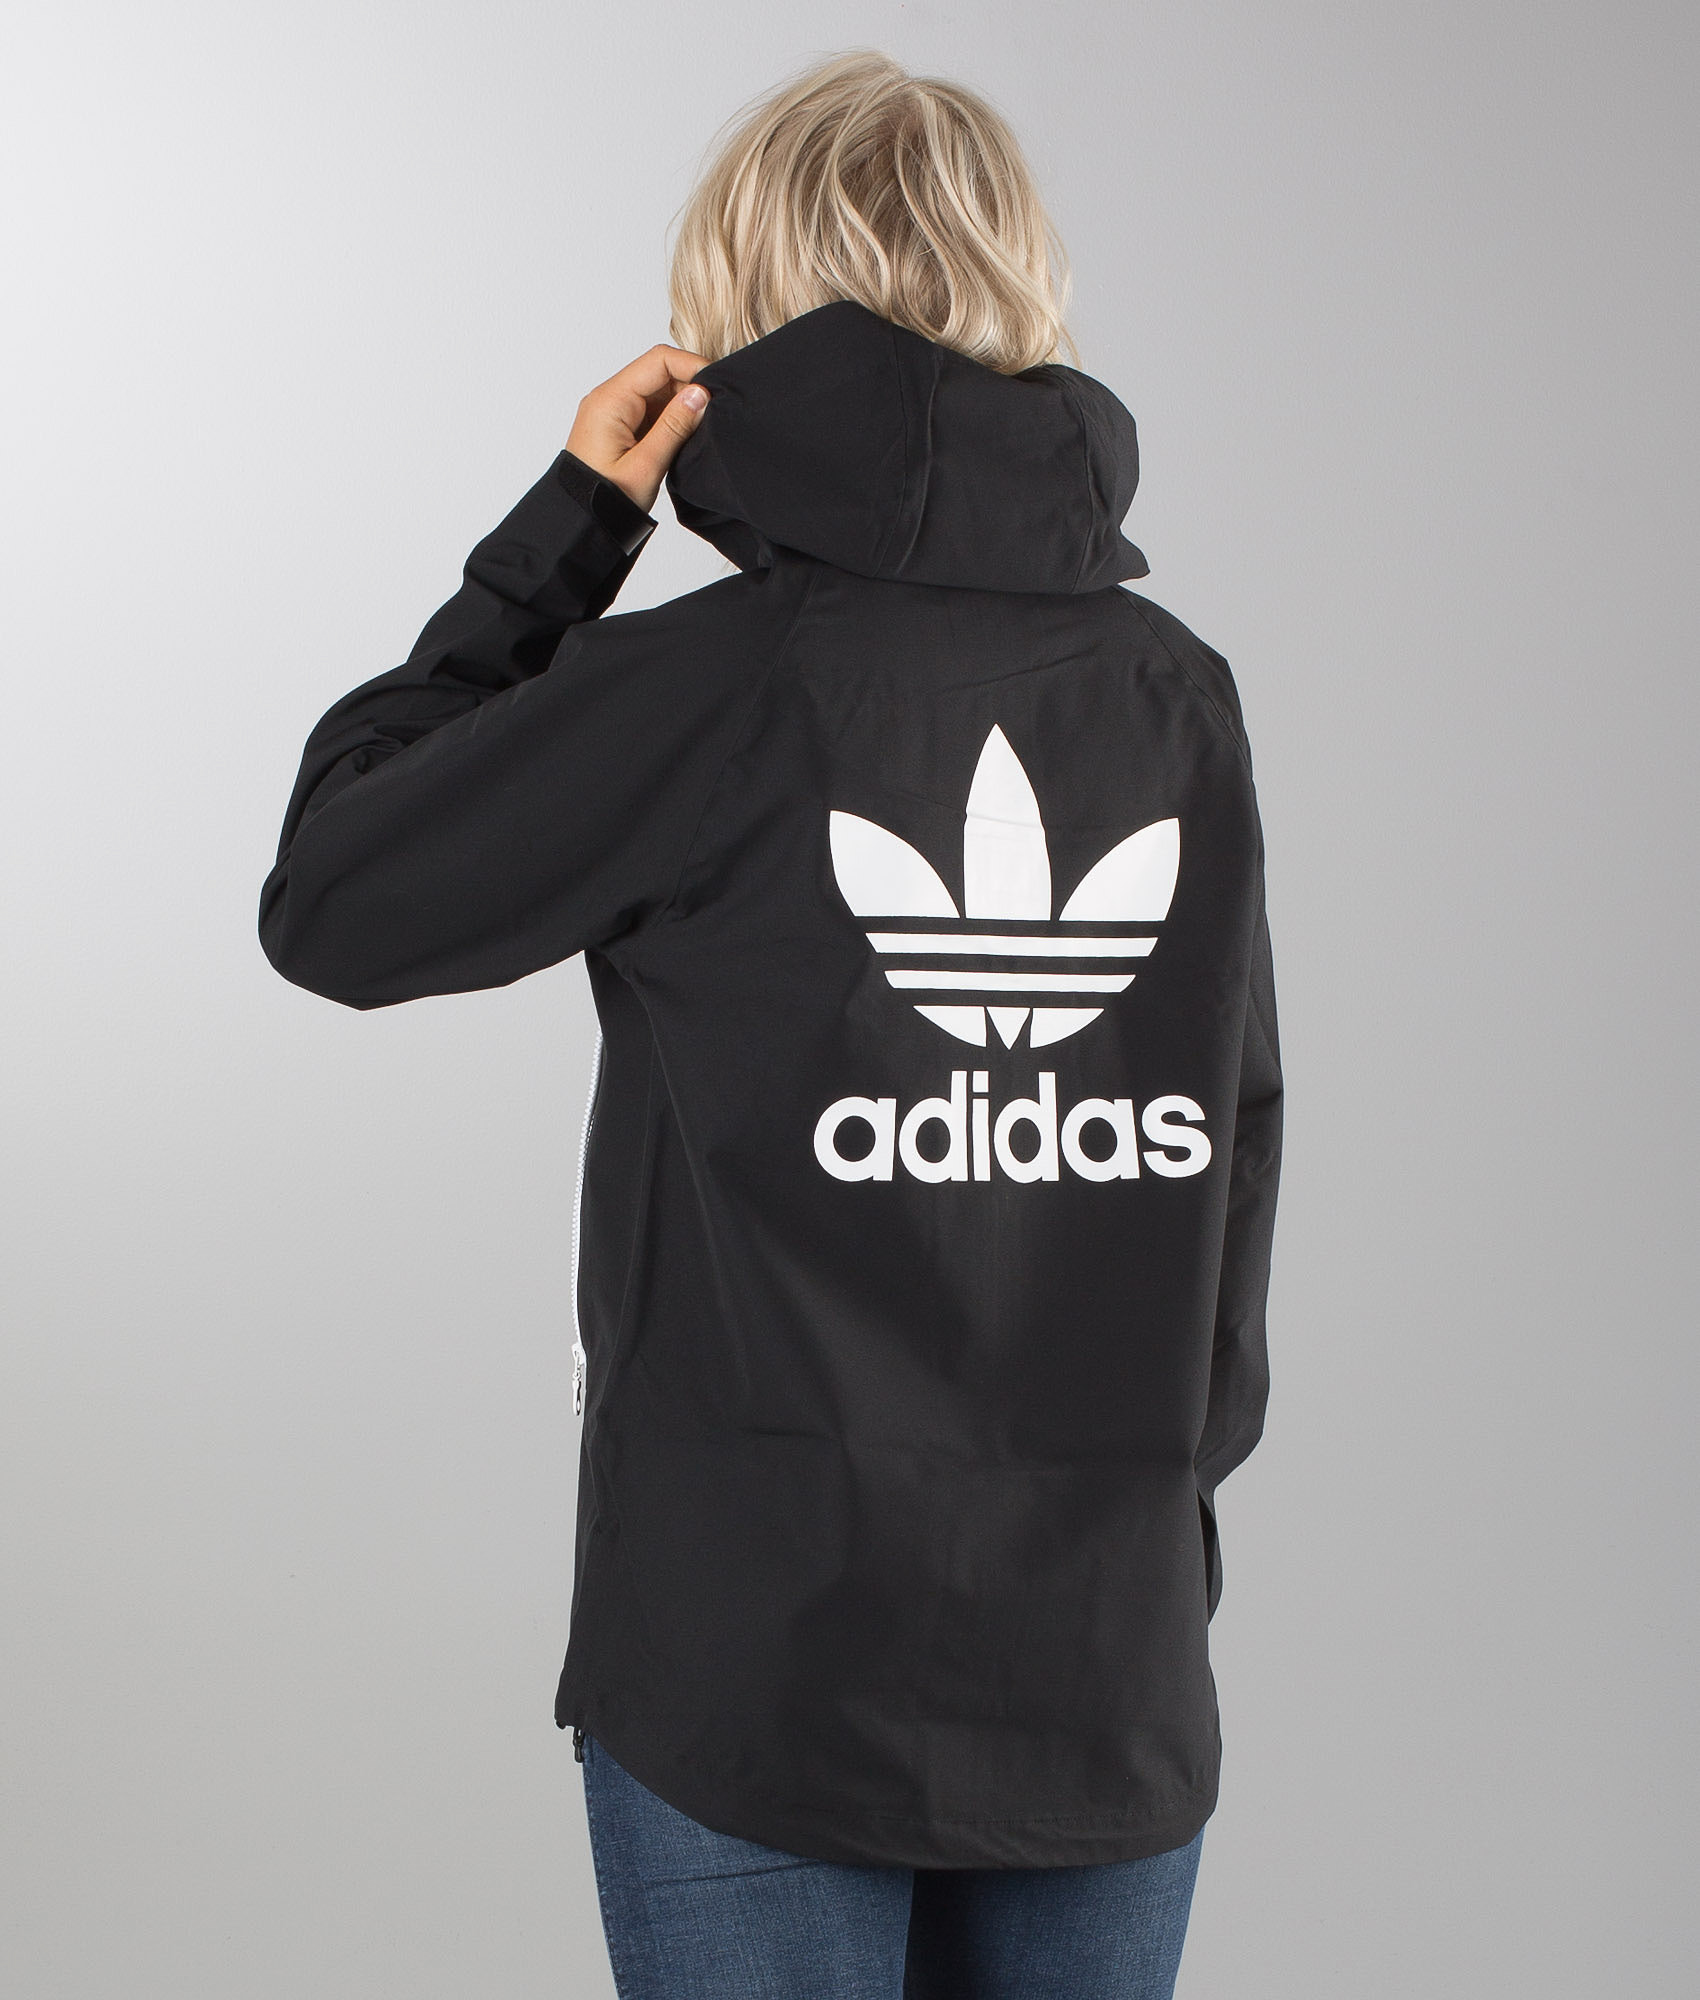 793054c1d31e Adidas Originals Hard Shell Jkt Unisex Jacket Black - Ridestore.com